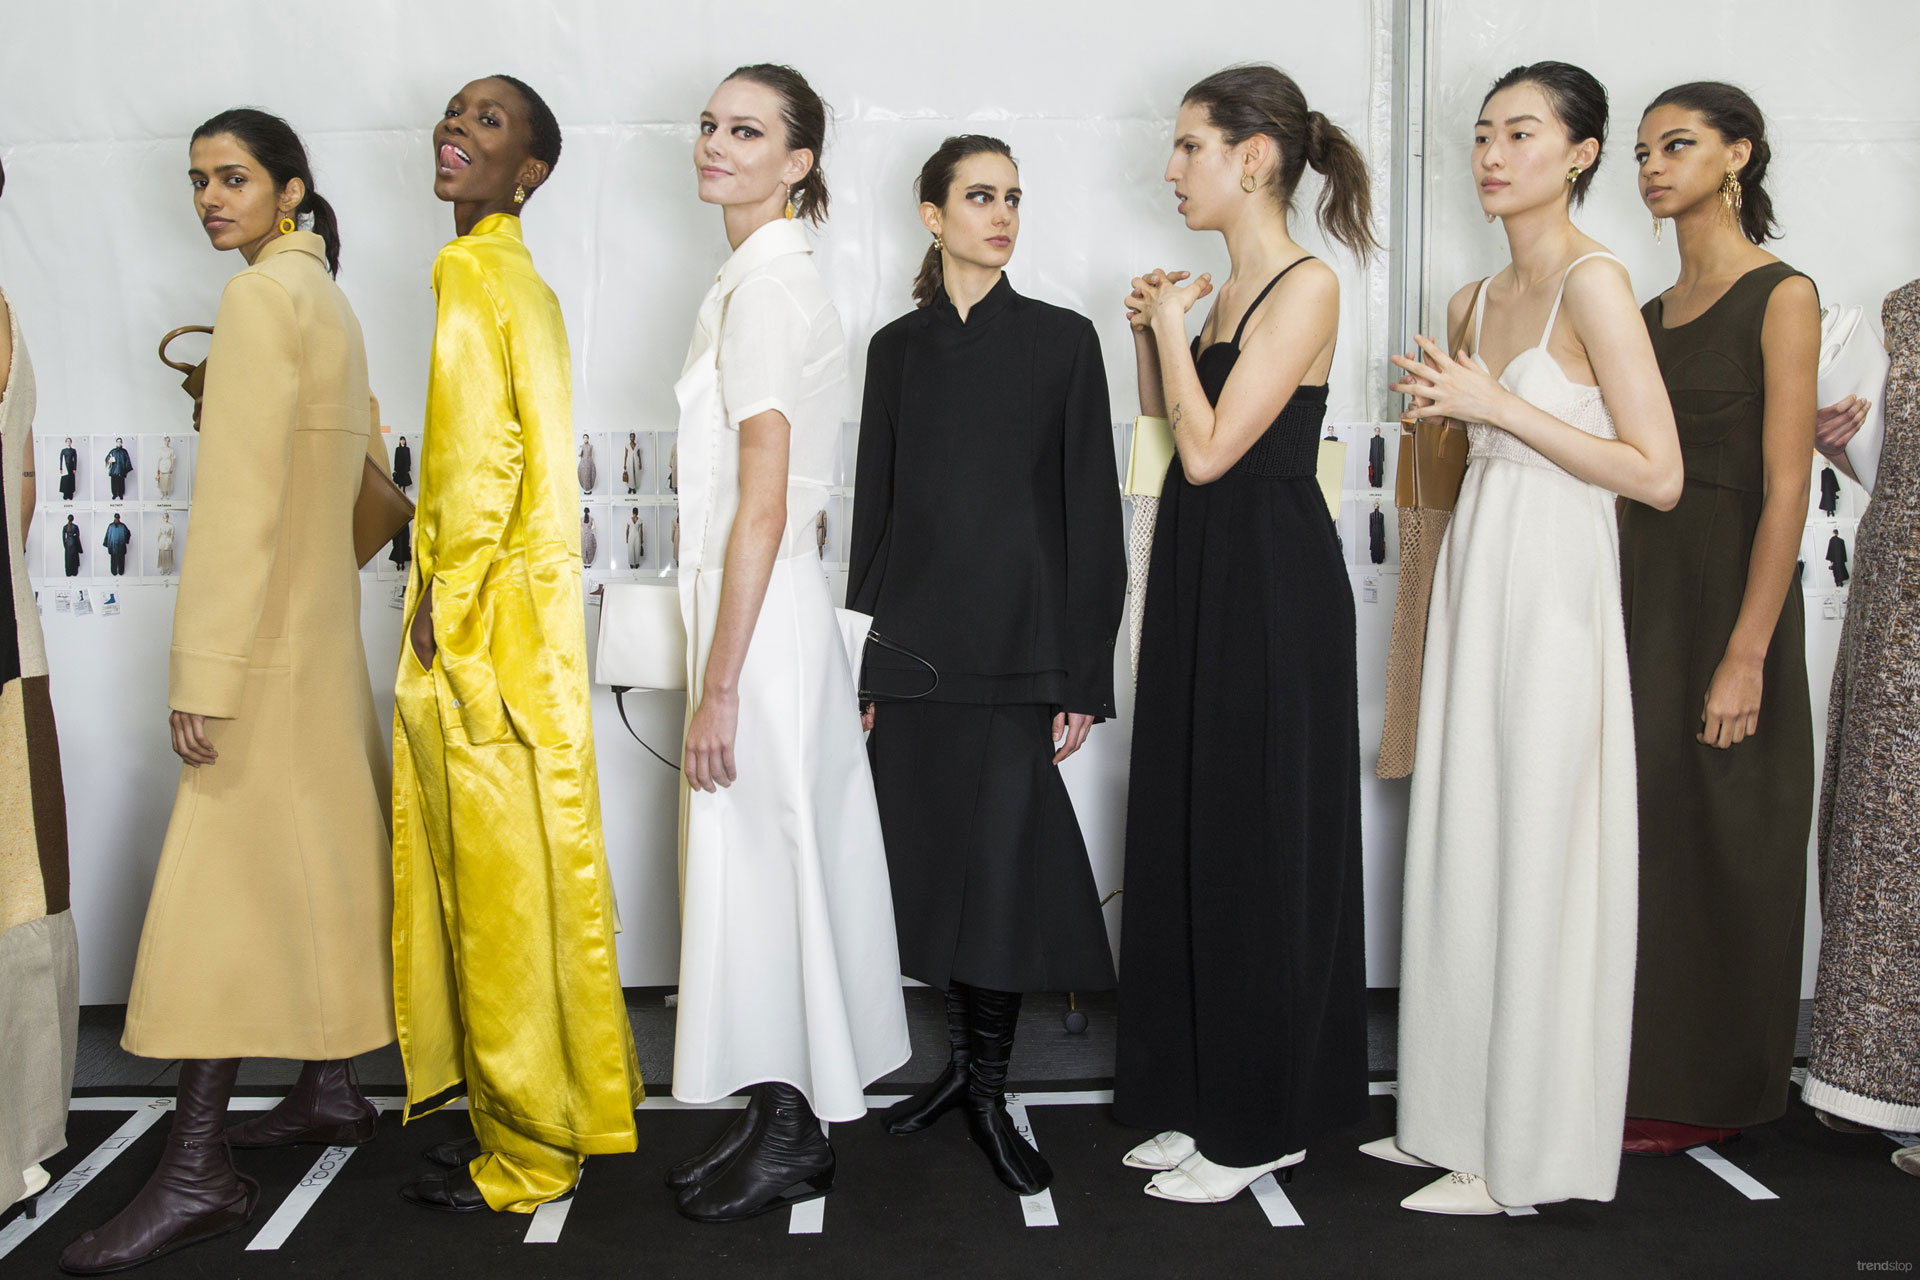 Key Women's Material Directions Fall Winter 2019-20